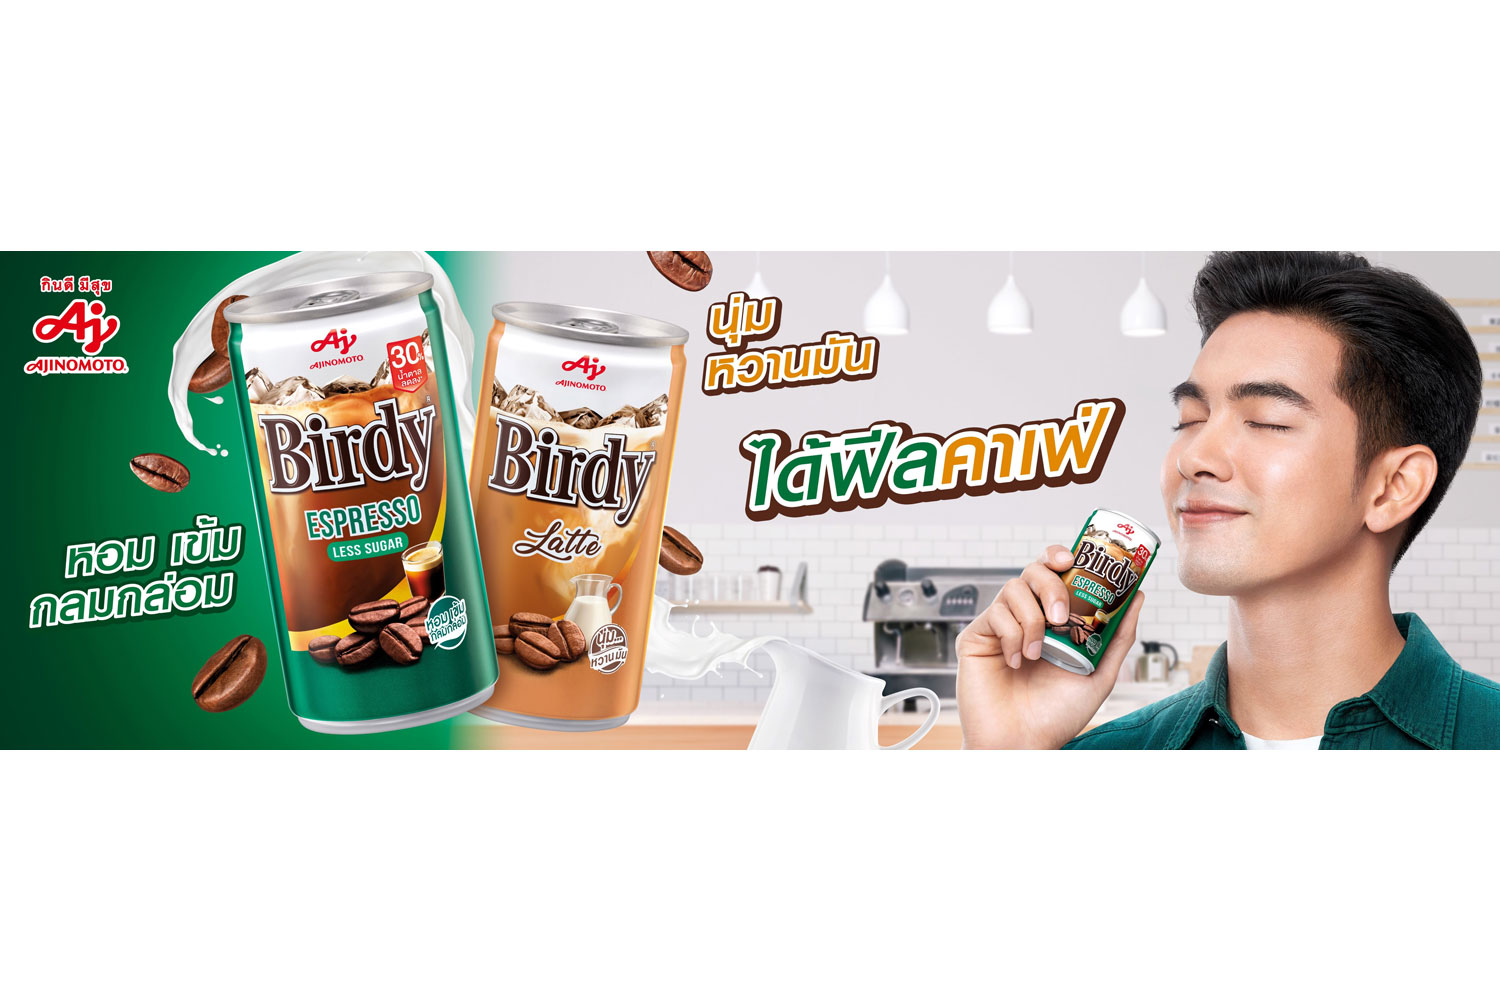 Birdy debuts new presenter duo along with new Espresso and Latte flavours